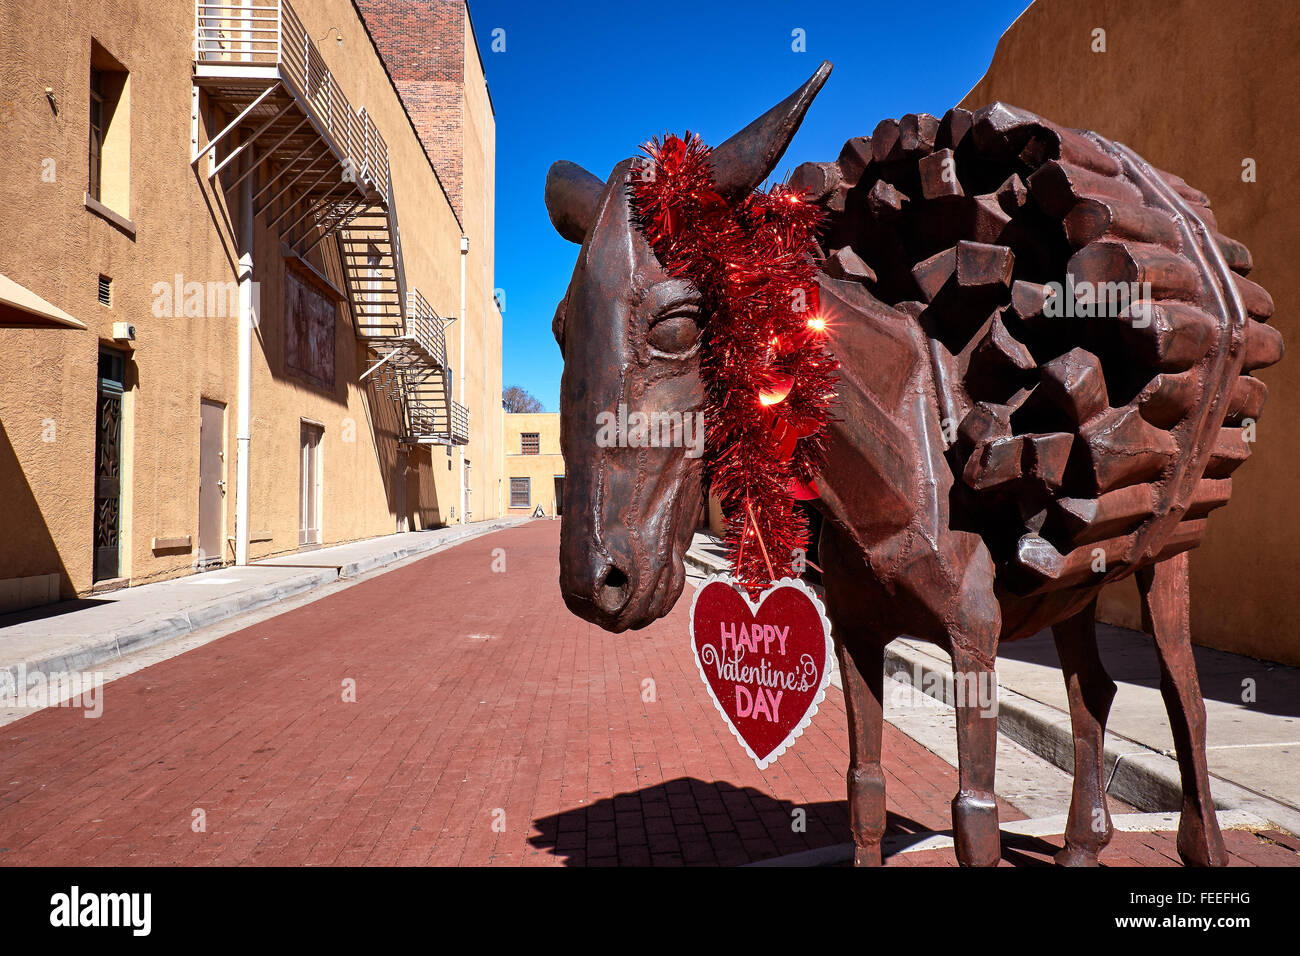 Sculpture in Burro Alley, Santa Fe, New Mexico, decorated for Valentine's Day - Stock Image